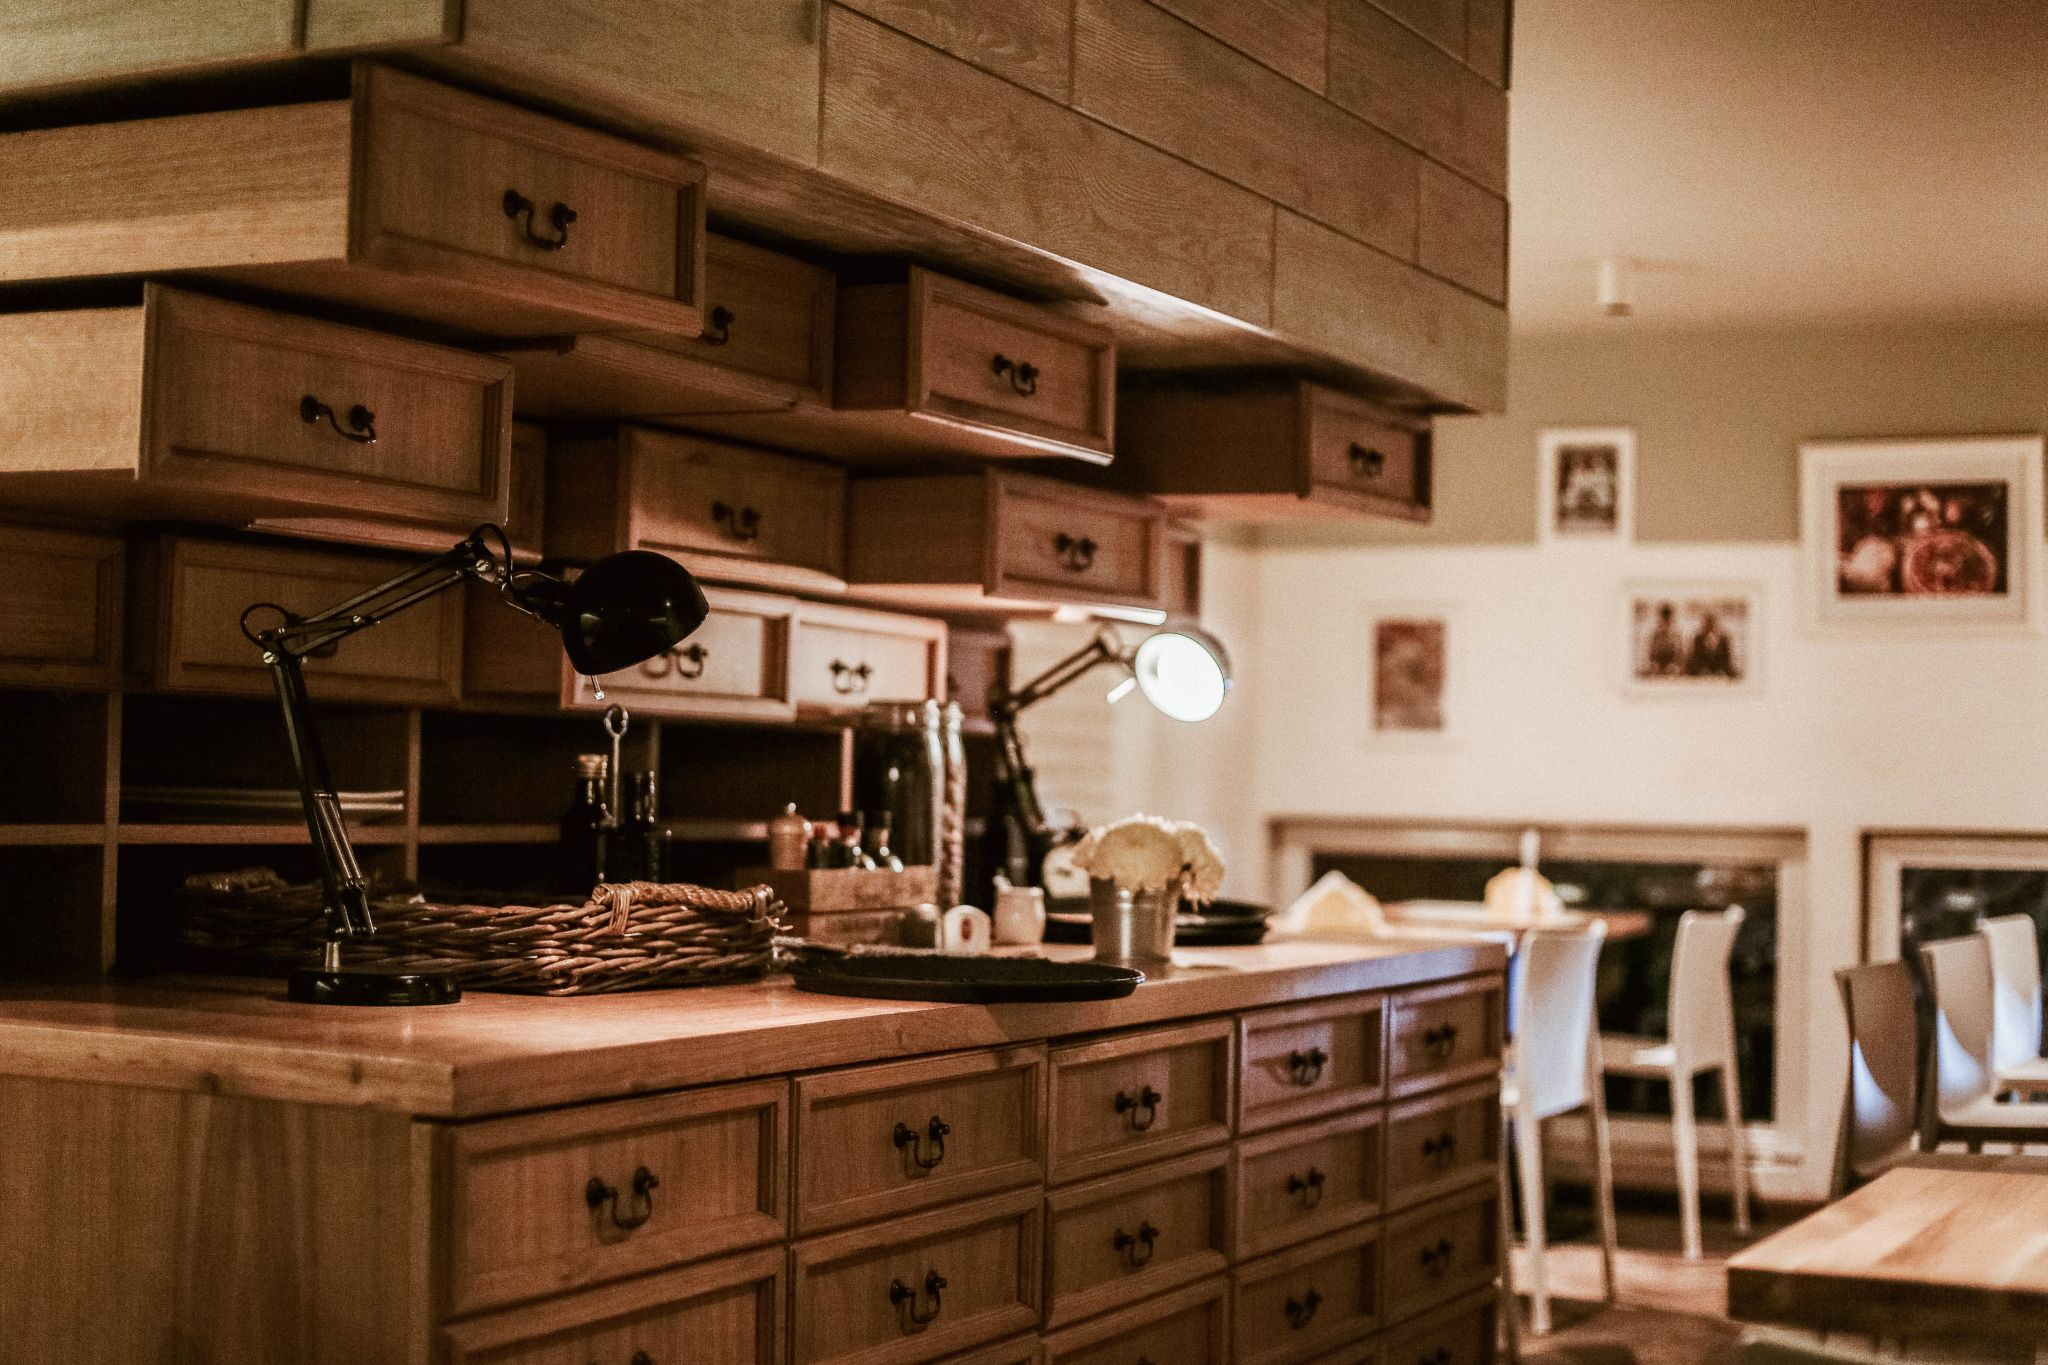 Cozy kitchen with lots of wooden cabinets